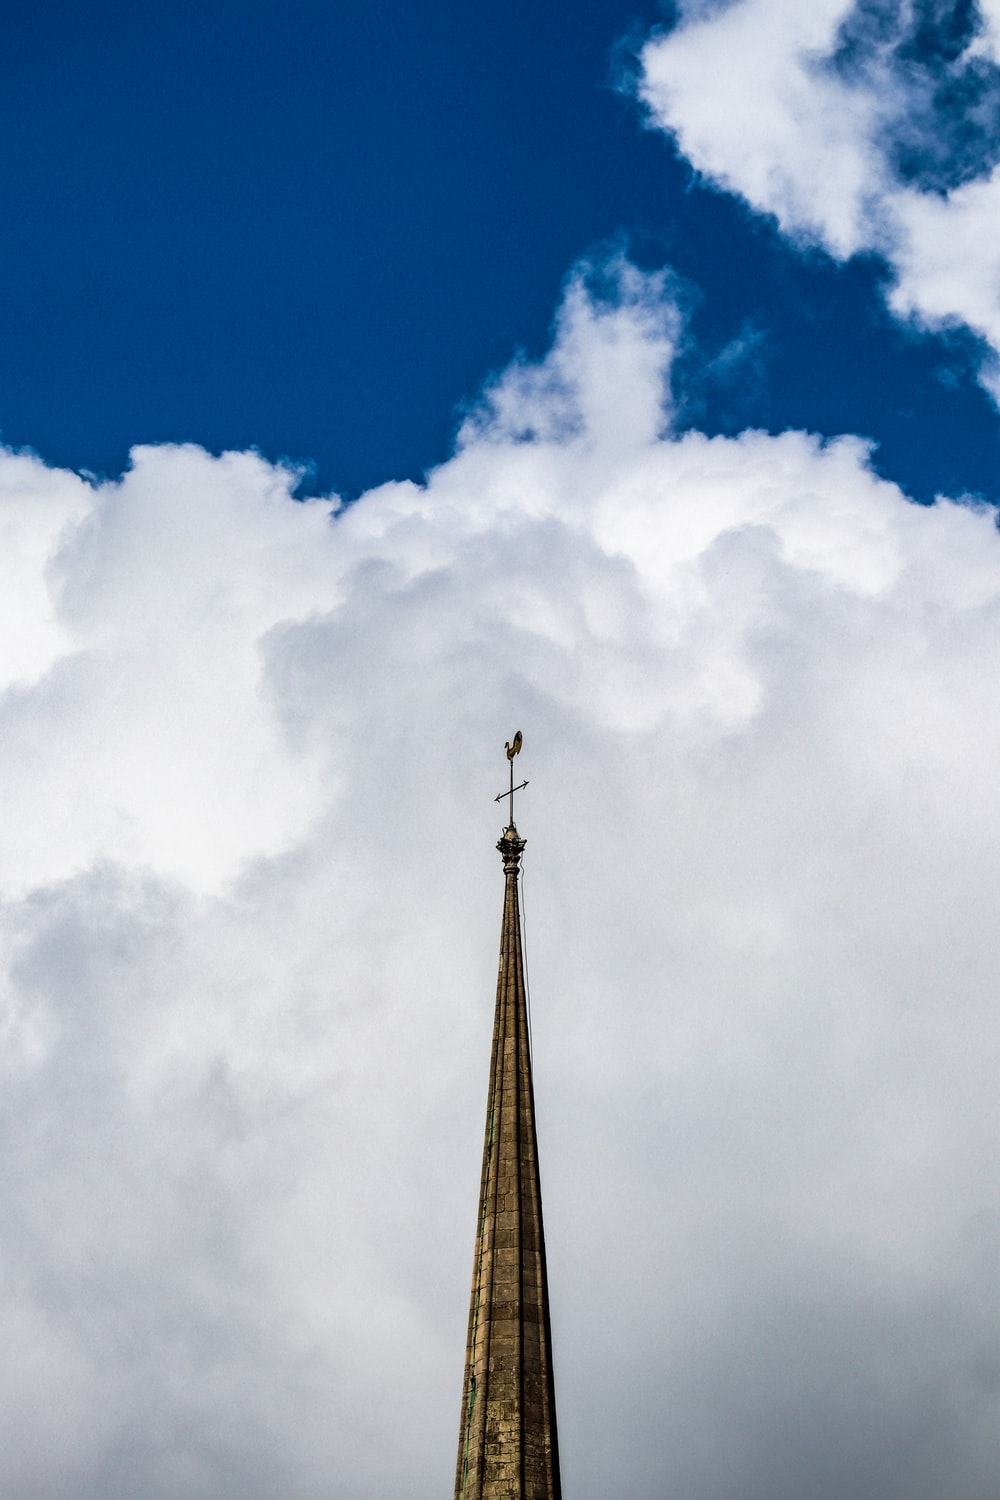 brown tower under blue sky and white clouds during daytime